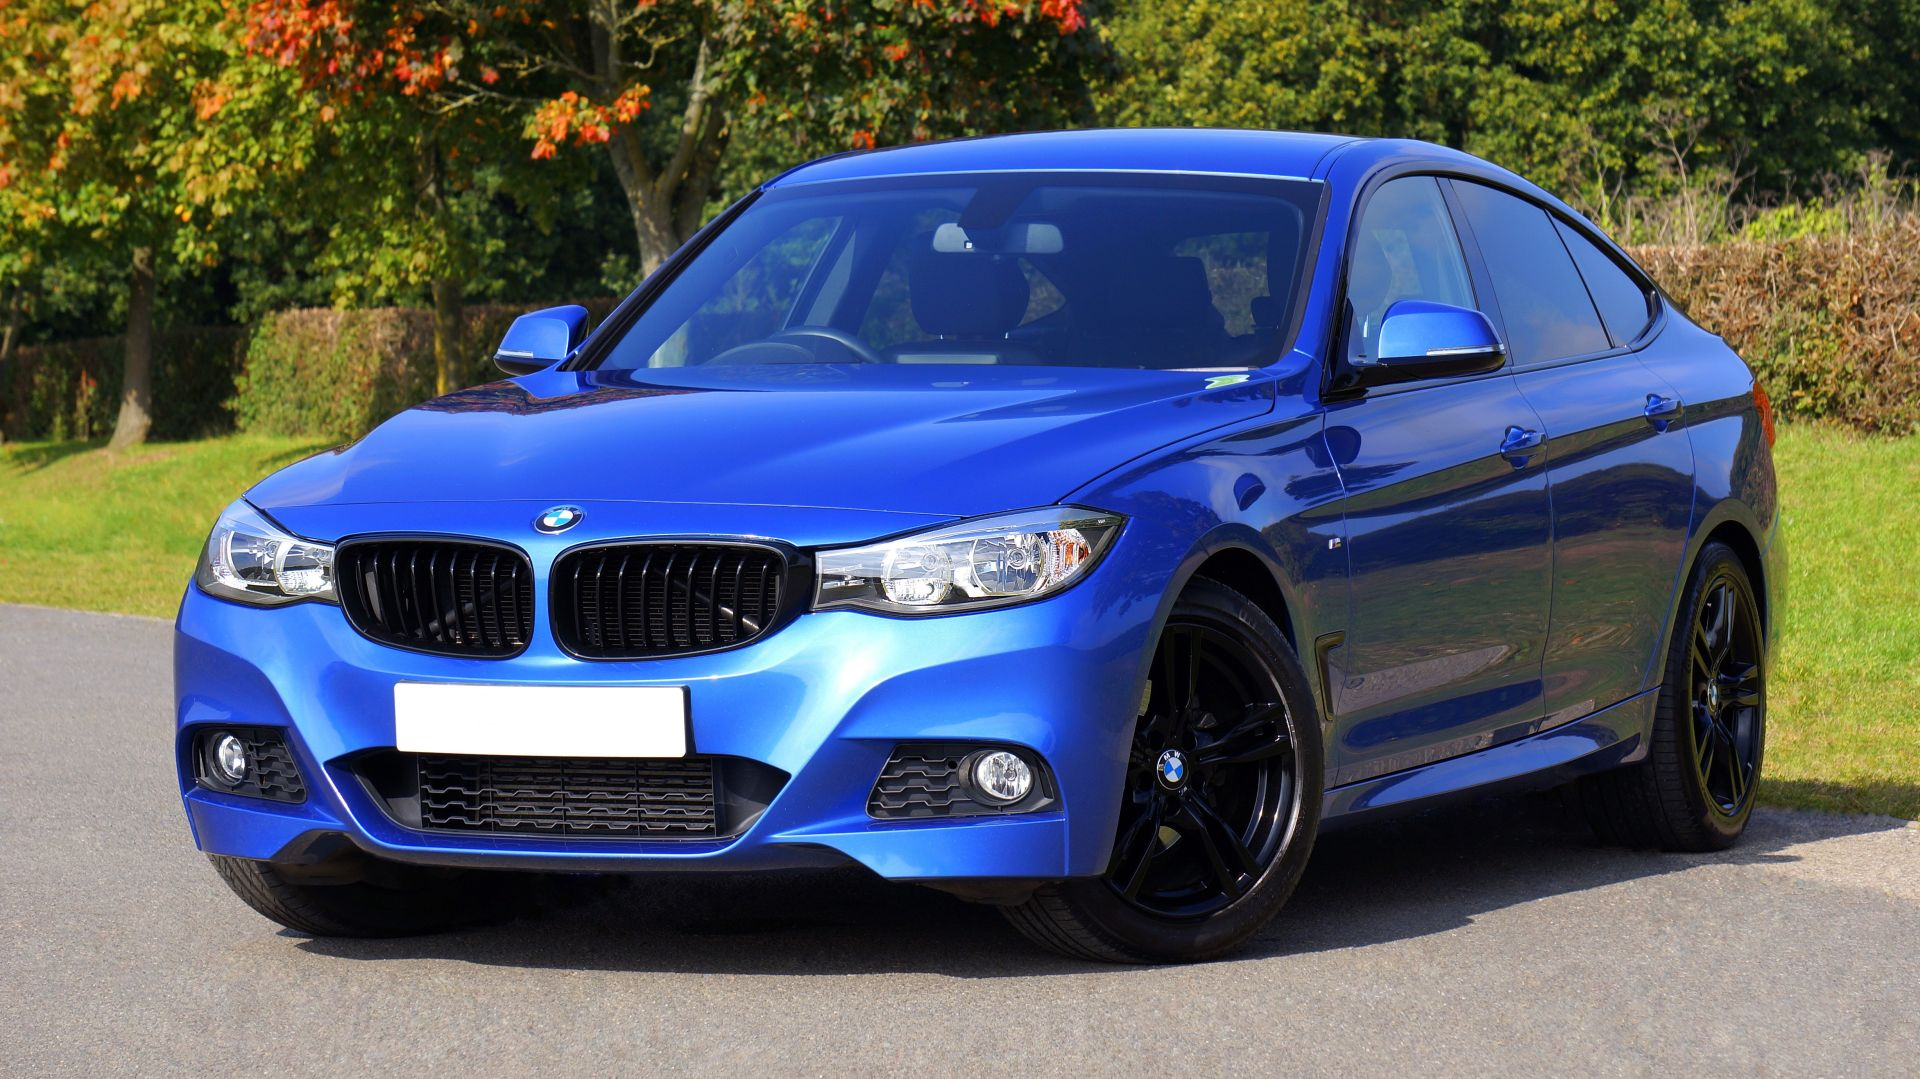 Love blue BMW? Personal Contract Purchase - PCP-Finance could be the way to get it.